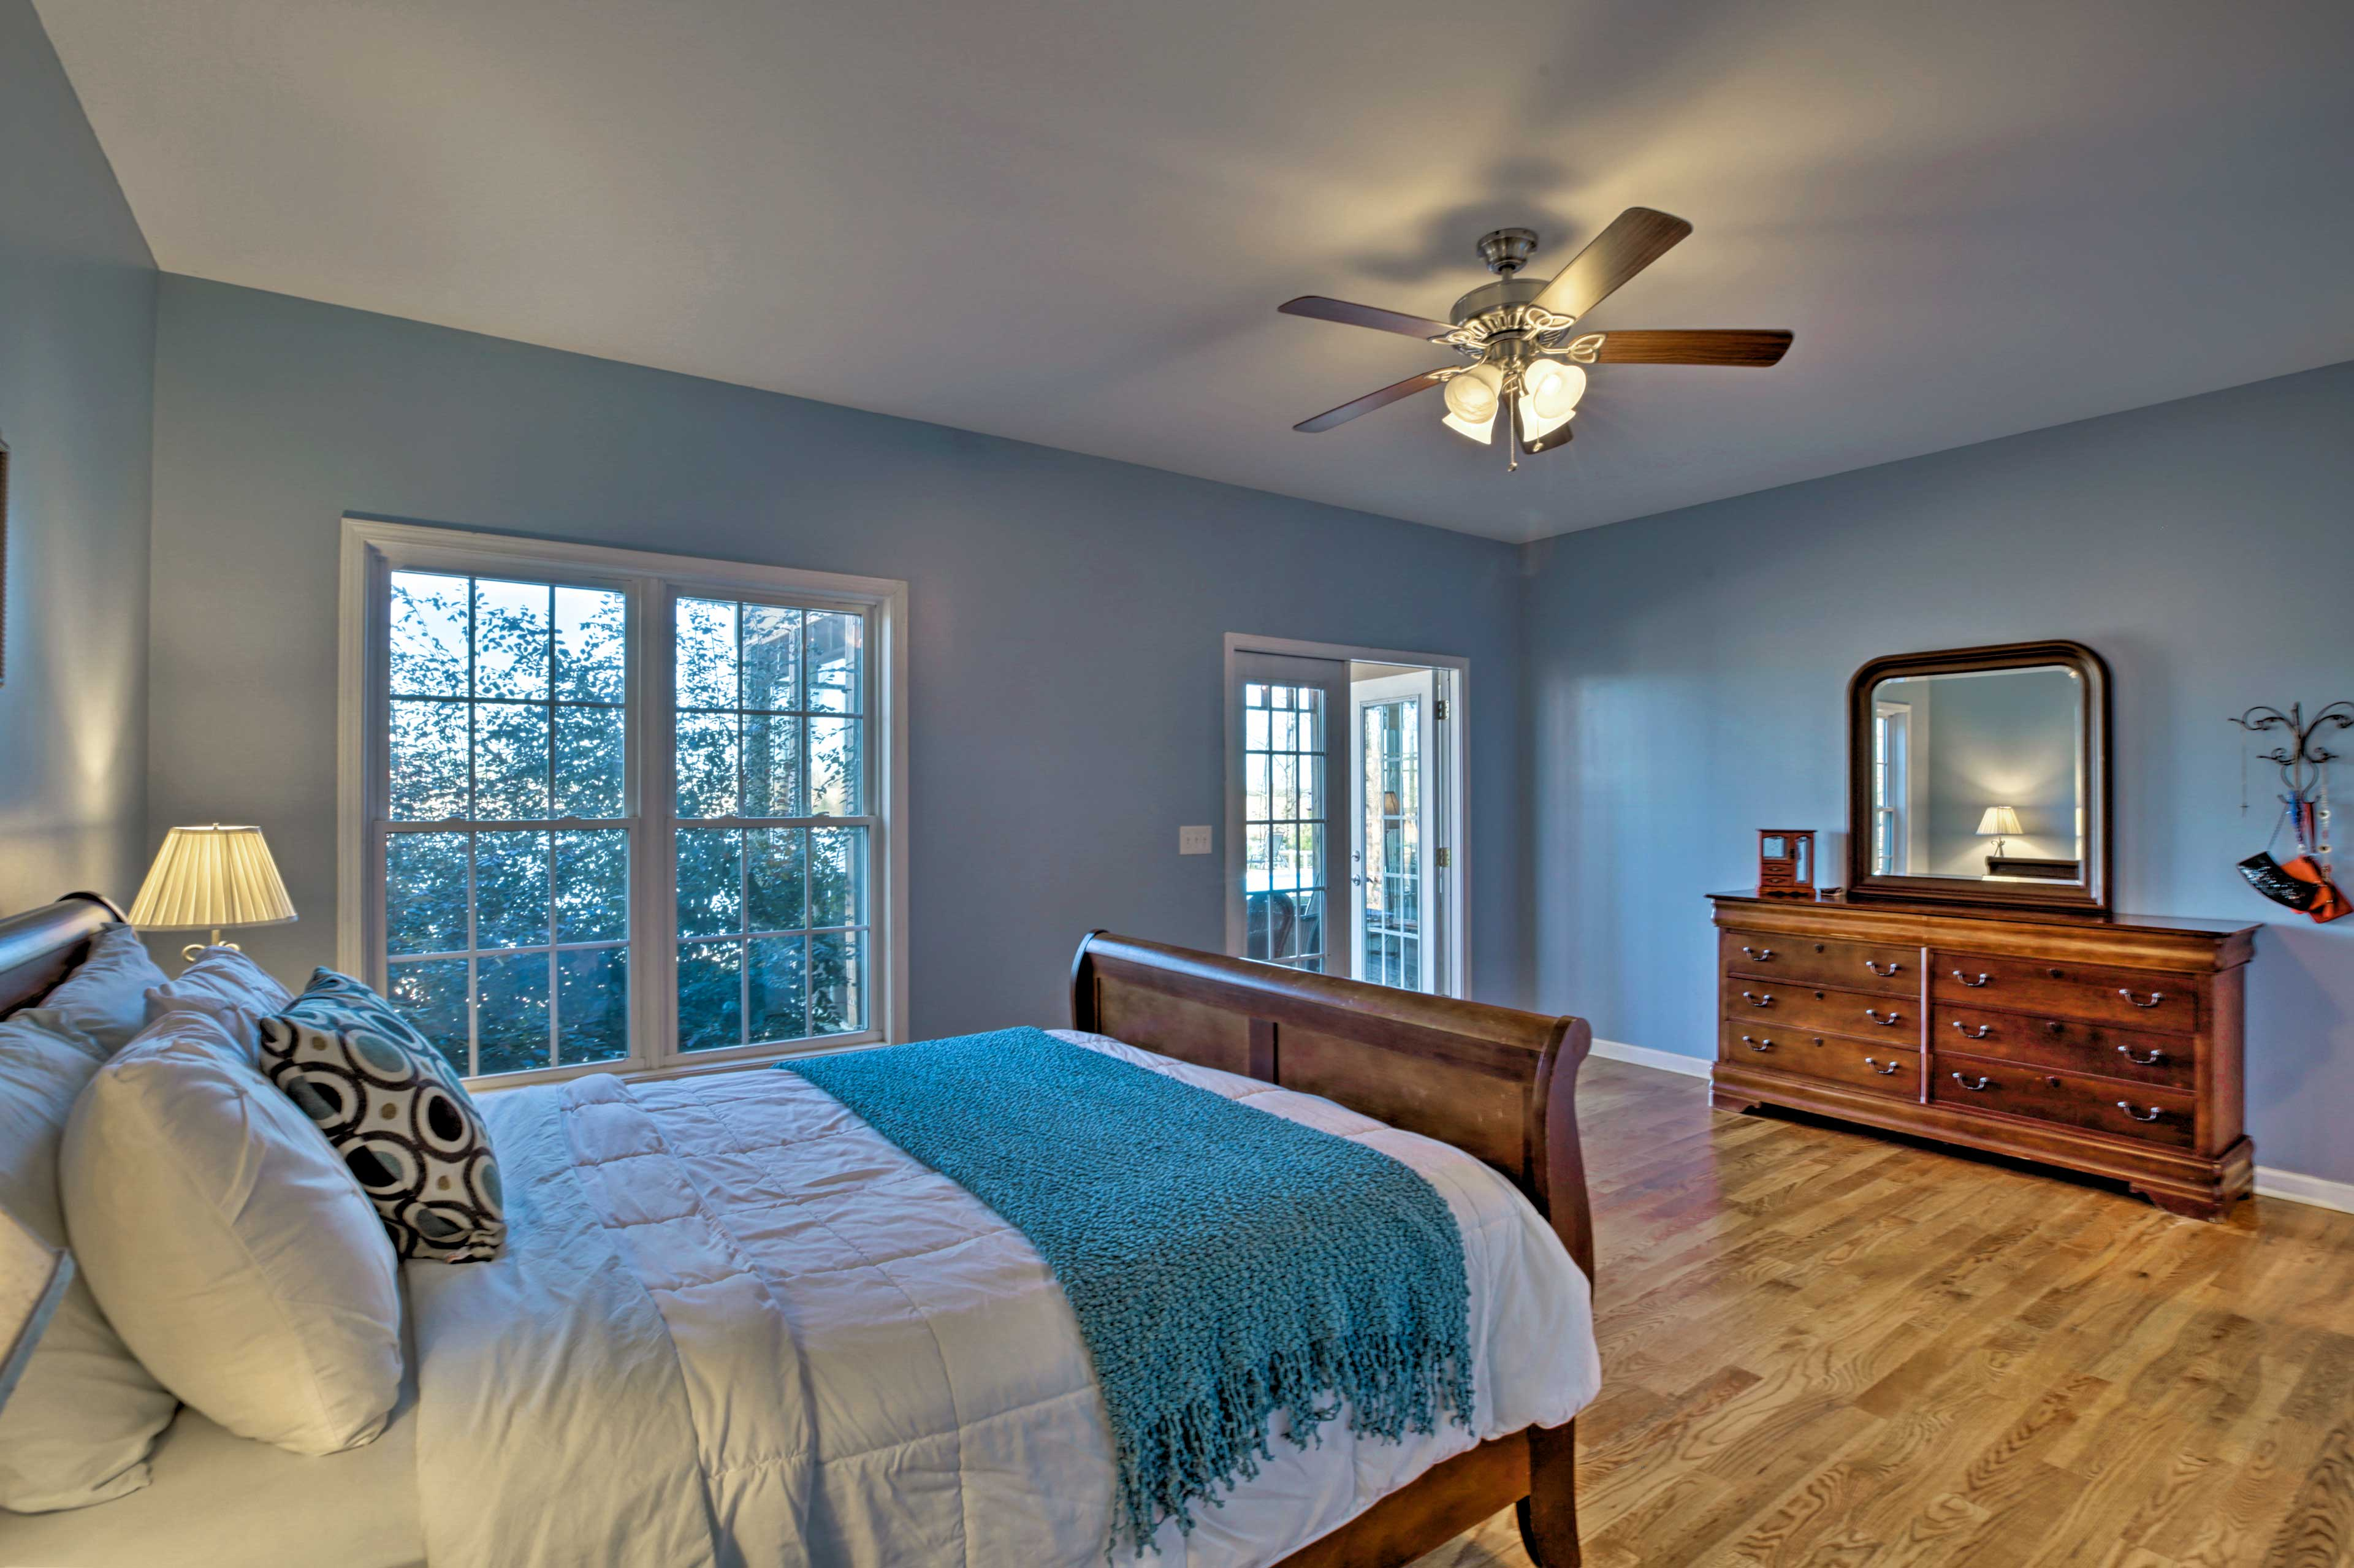 This master bedroom sleeps 2 on a queen bed.